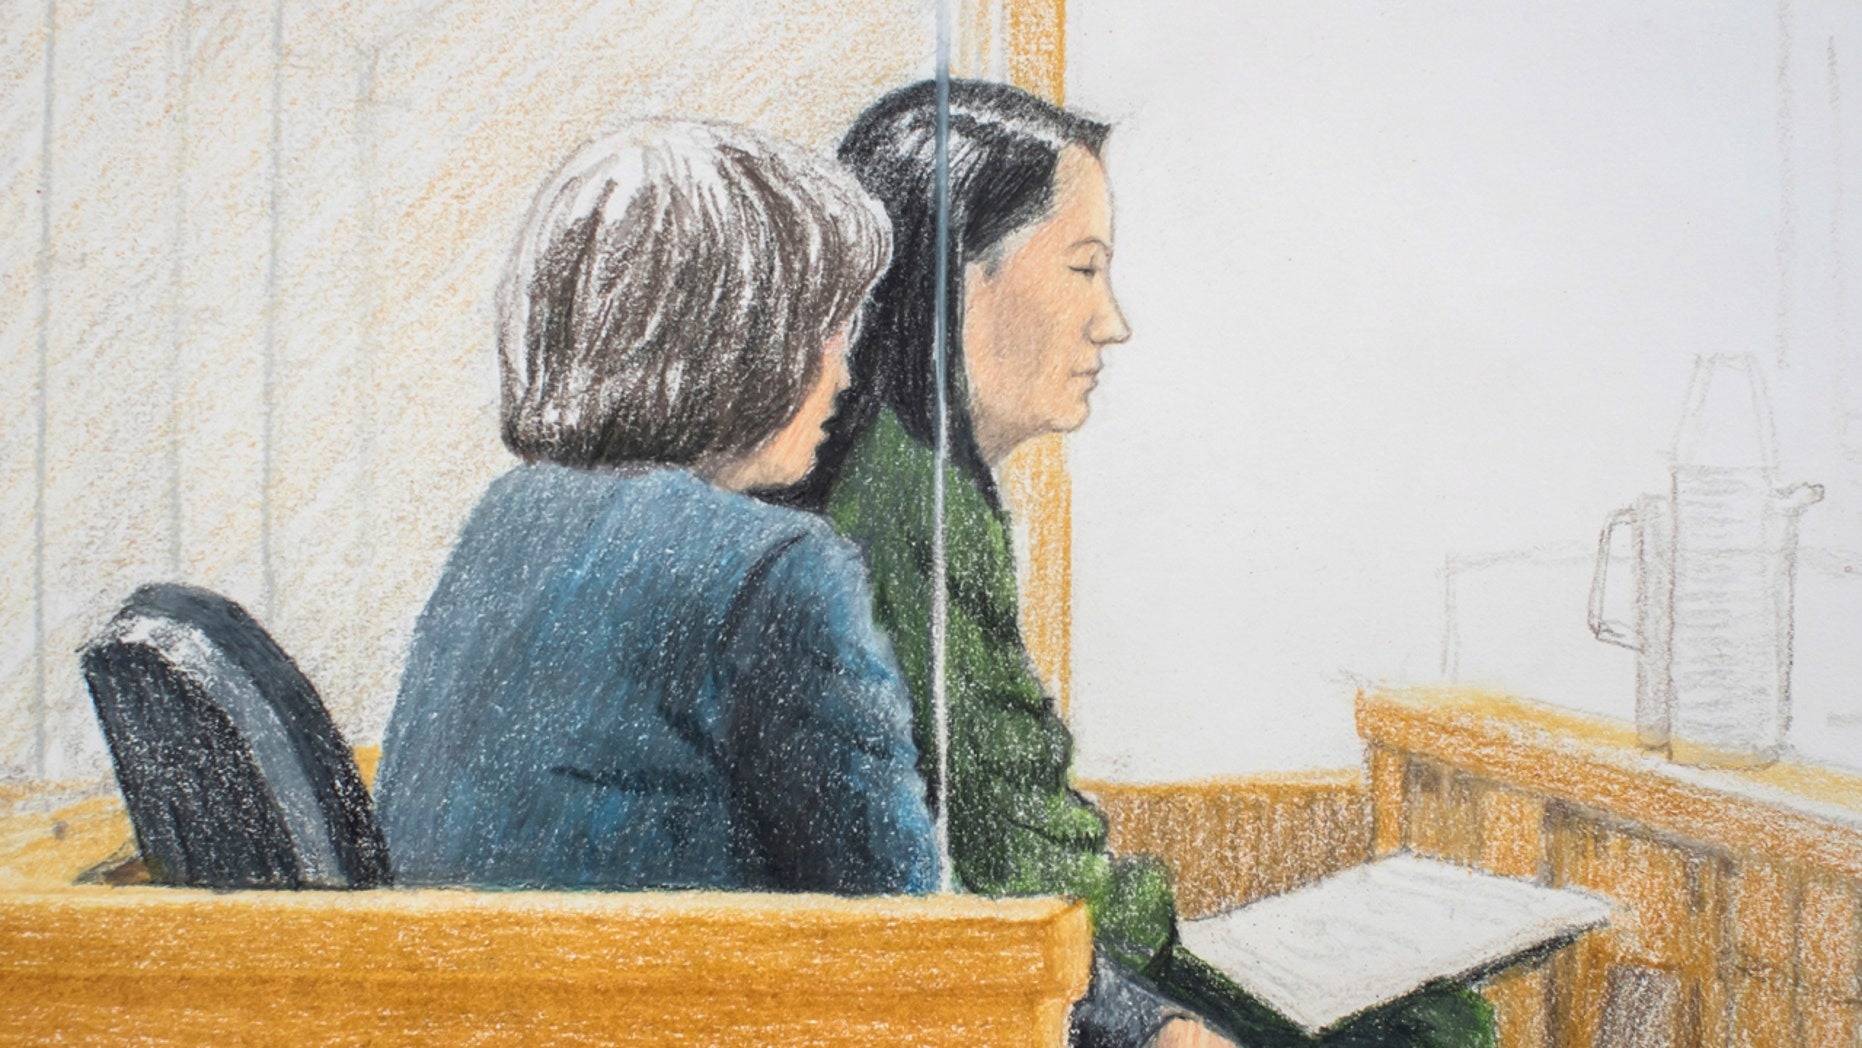 In this court ruling, Meng Wanzhou (right), the Chief Financial Officer of Huawei Technologies, is sitting next to a translator on Friday, December 7, 2018, during a cash hearing outside the British Columbia Supreme Court in Vancouver. (Jane Wolsak / The Canadian Press via AP)